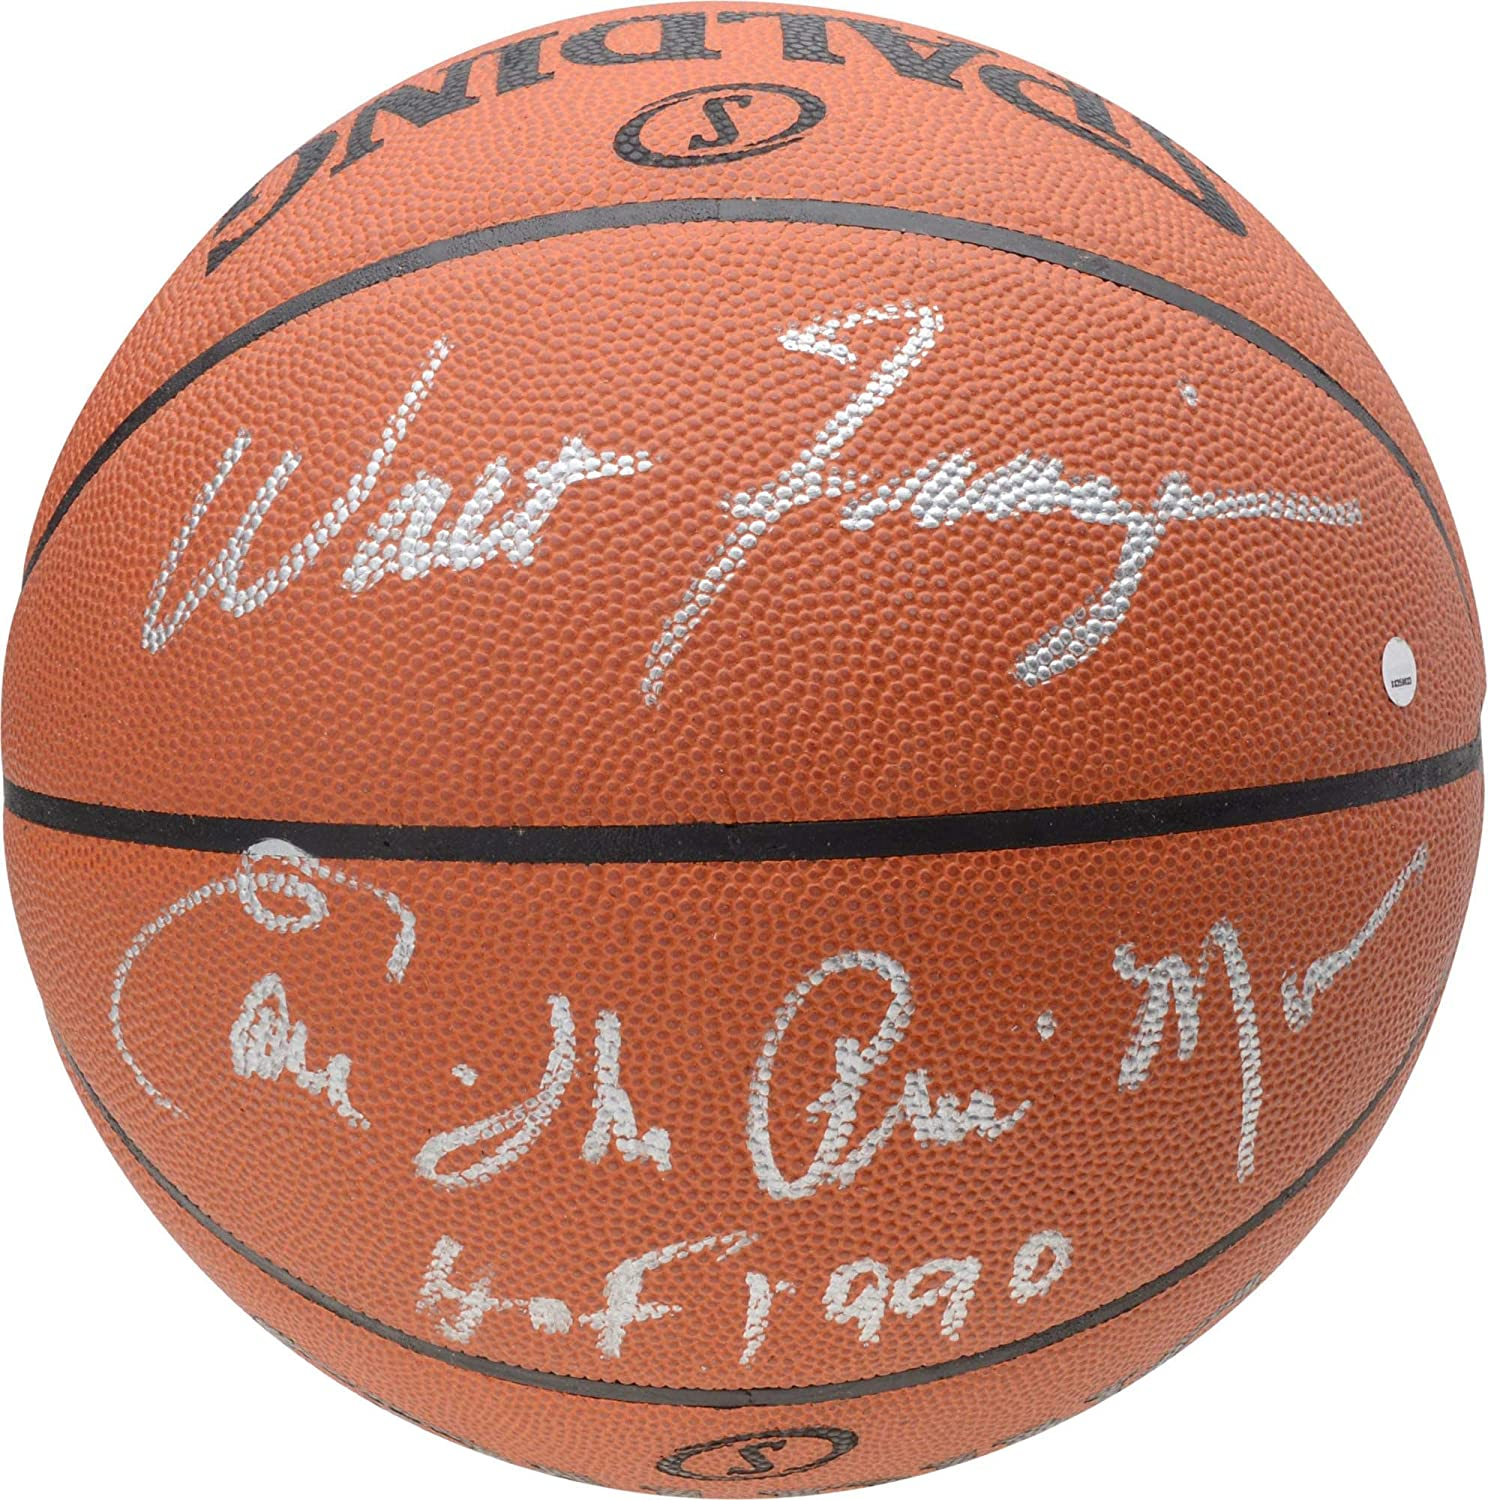 Fanatics Authentic Certified Earl Monroe and Walt Frazier New York Knicks Dual Autographed Spalding NBA Official Game Basketball withHOF 1990 Inscription by Monroe